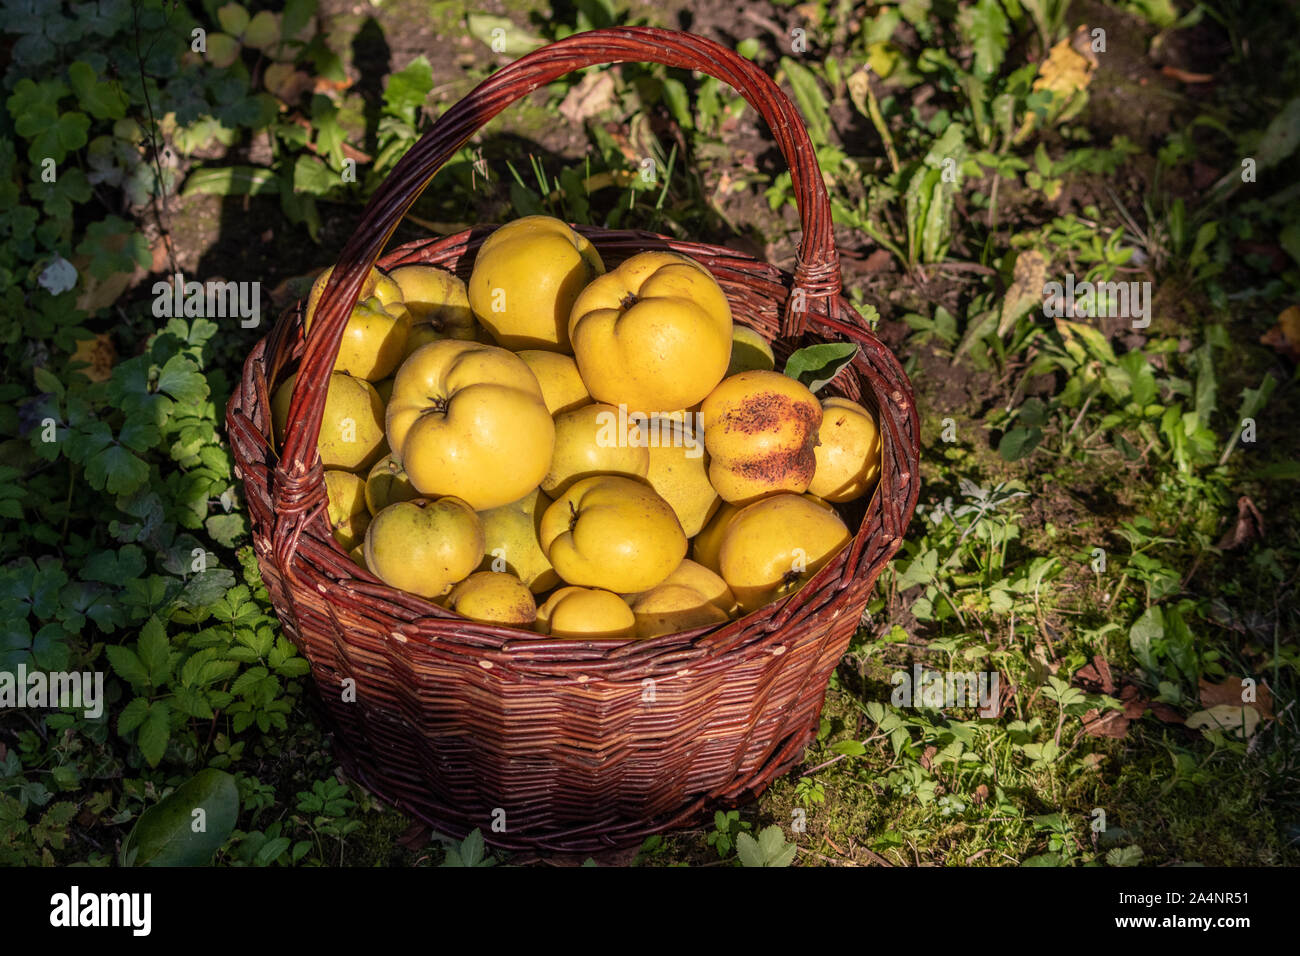 Wicker basket full of ripe quinces harvested in autumn Stock Photo